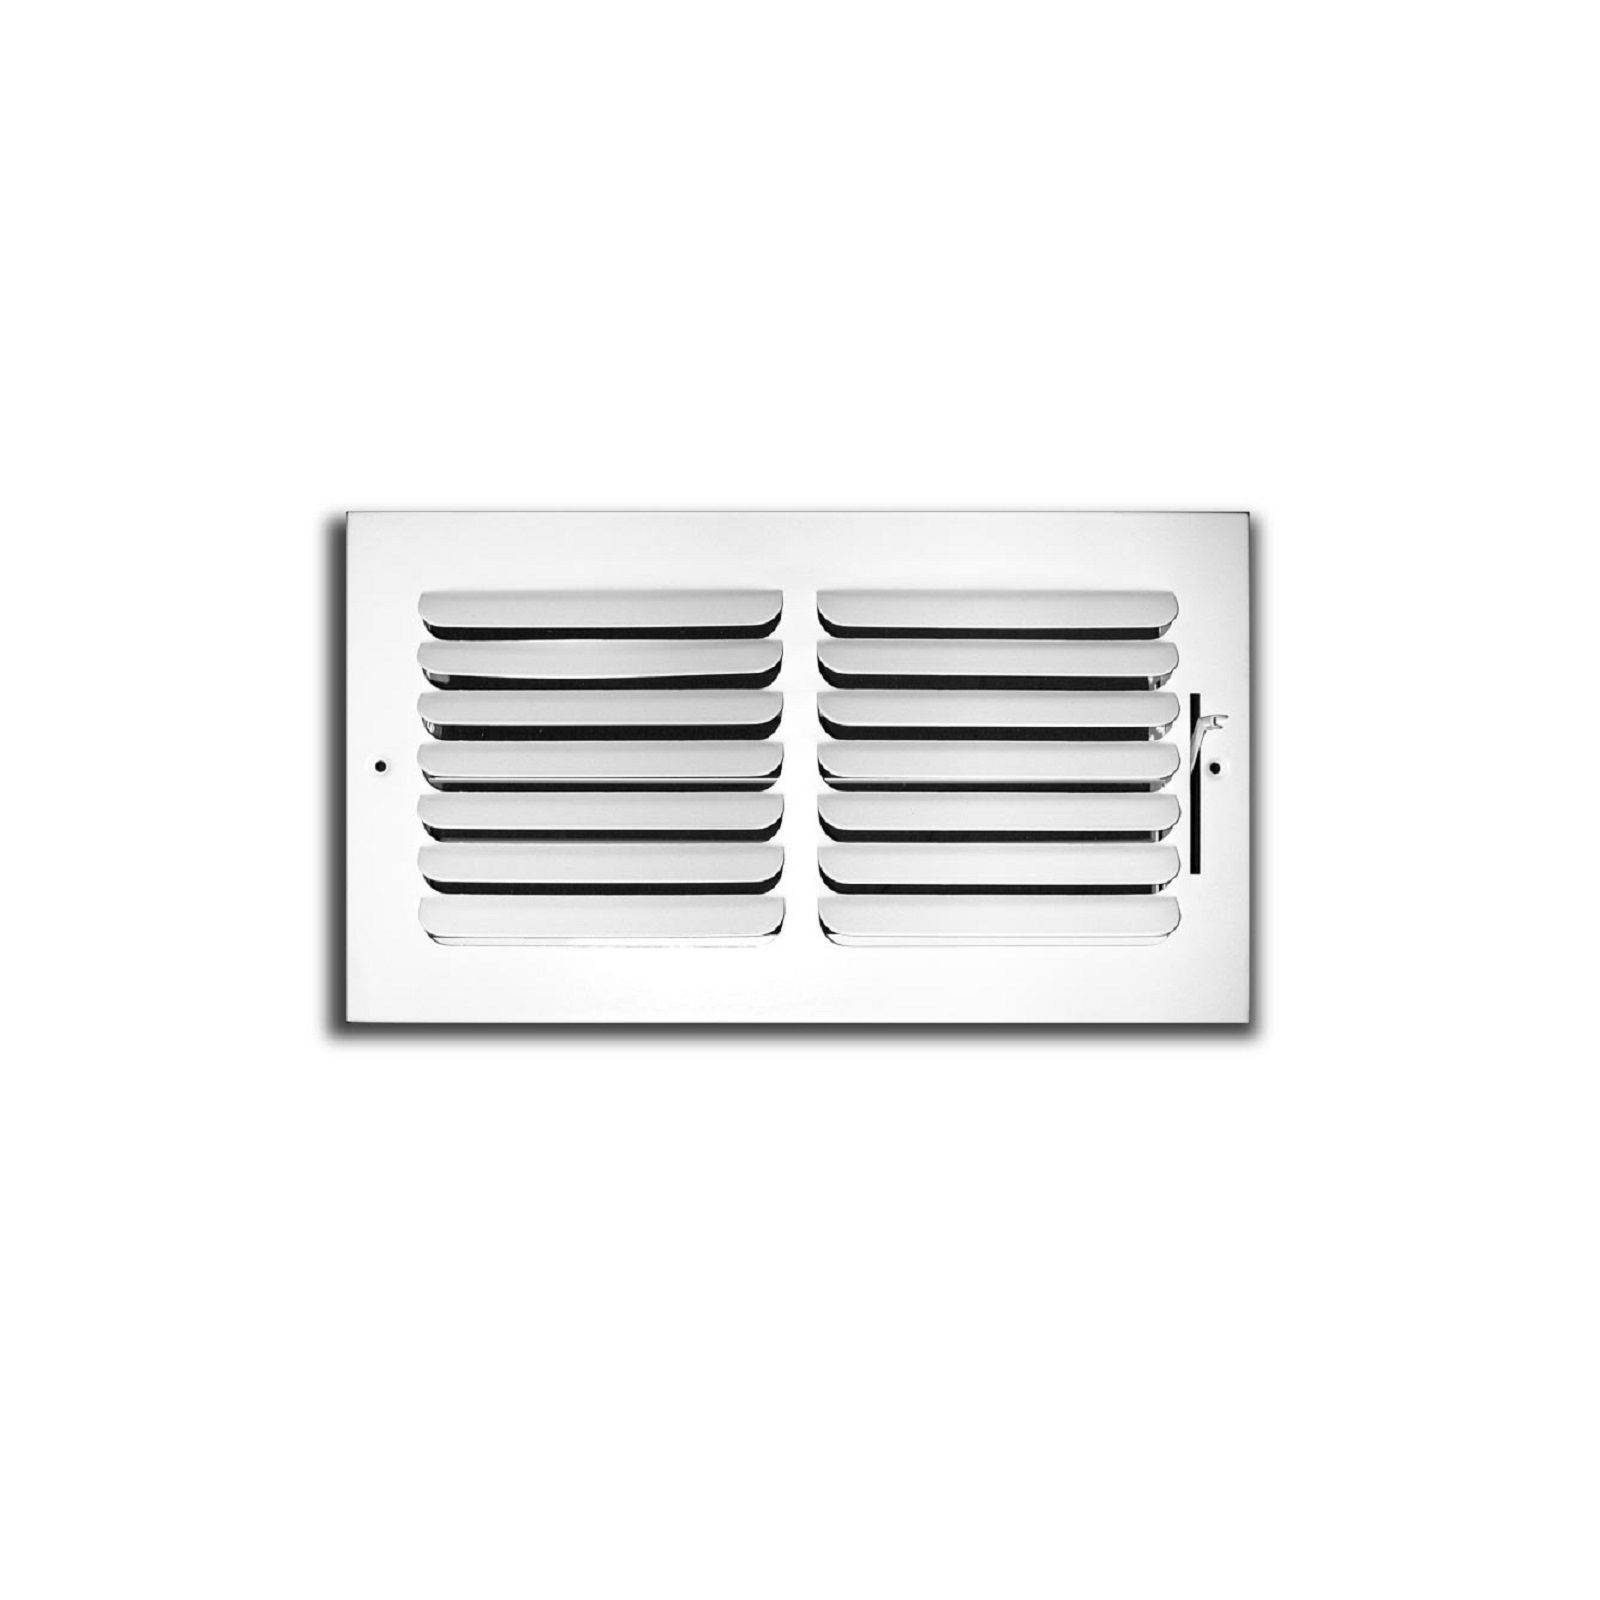 "TRUaire 401M 10X04 - Fixed Curved Blade Wall/Ceiling Register 401M With Multi Shutter Damper, 1-Way, White, 10"" X 04"""